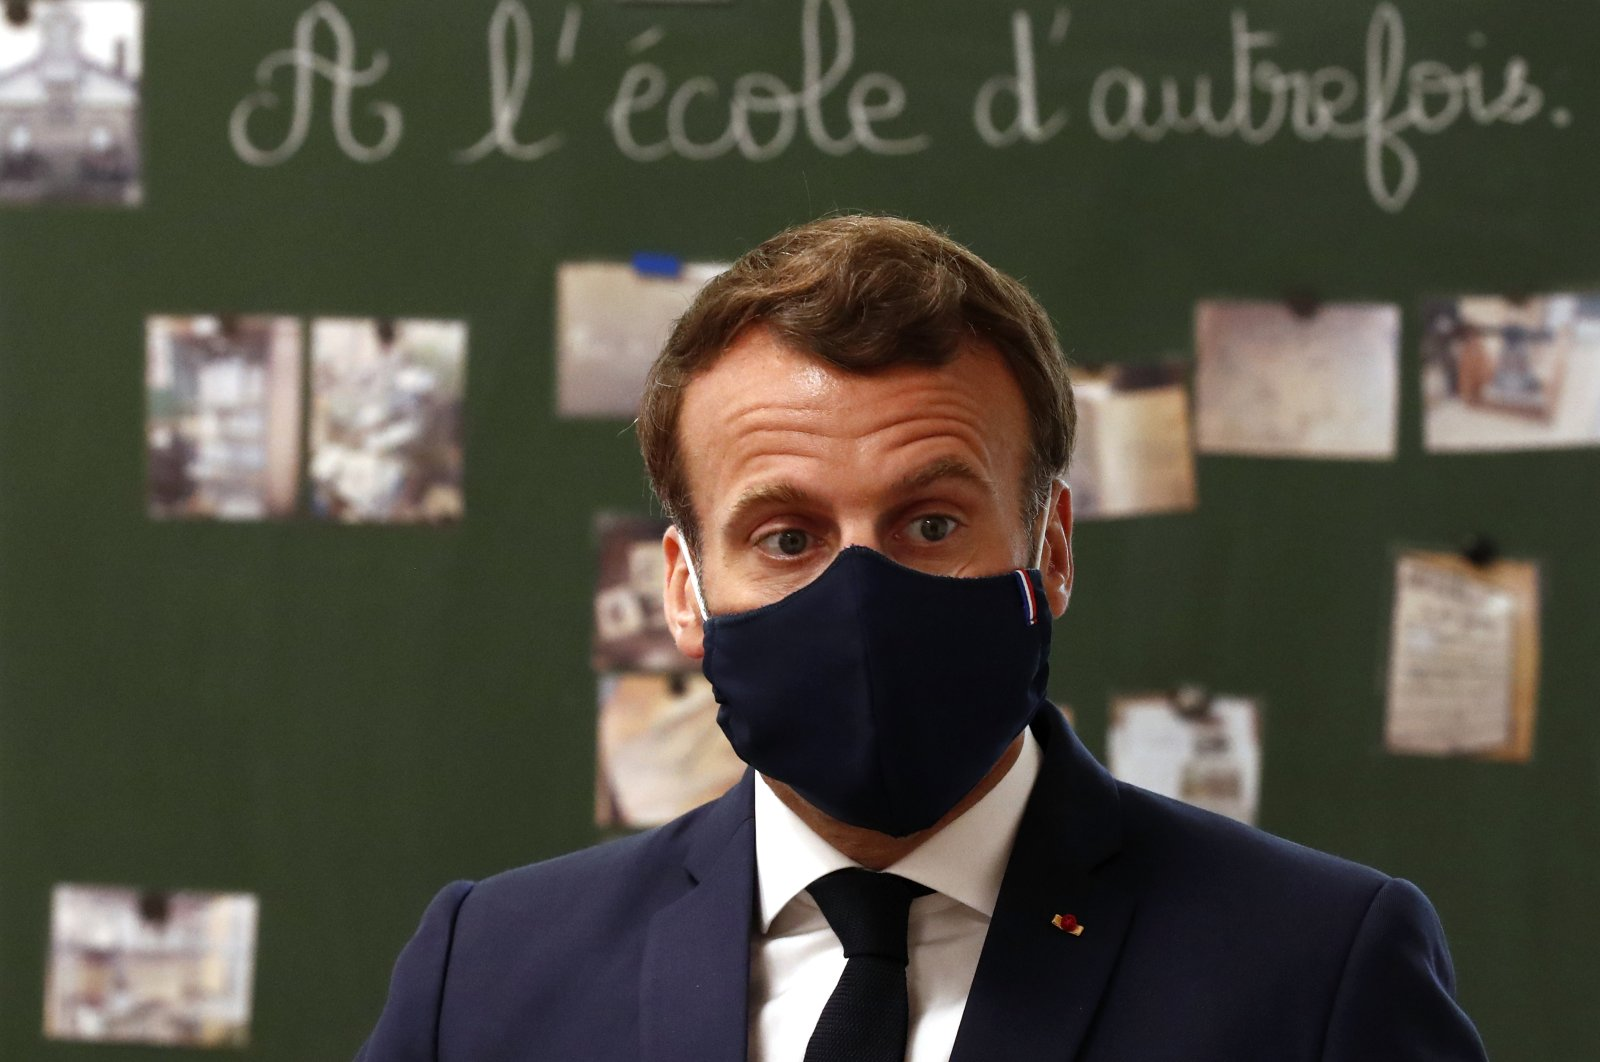 French President Emmanuel Macron, wearing a protective face mask, speaks with schoolchildren during a class at the Pierre Ronsard elementary school in Poissy, outside Paris, May 5, 2020. (AP Photo)